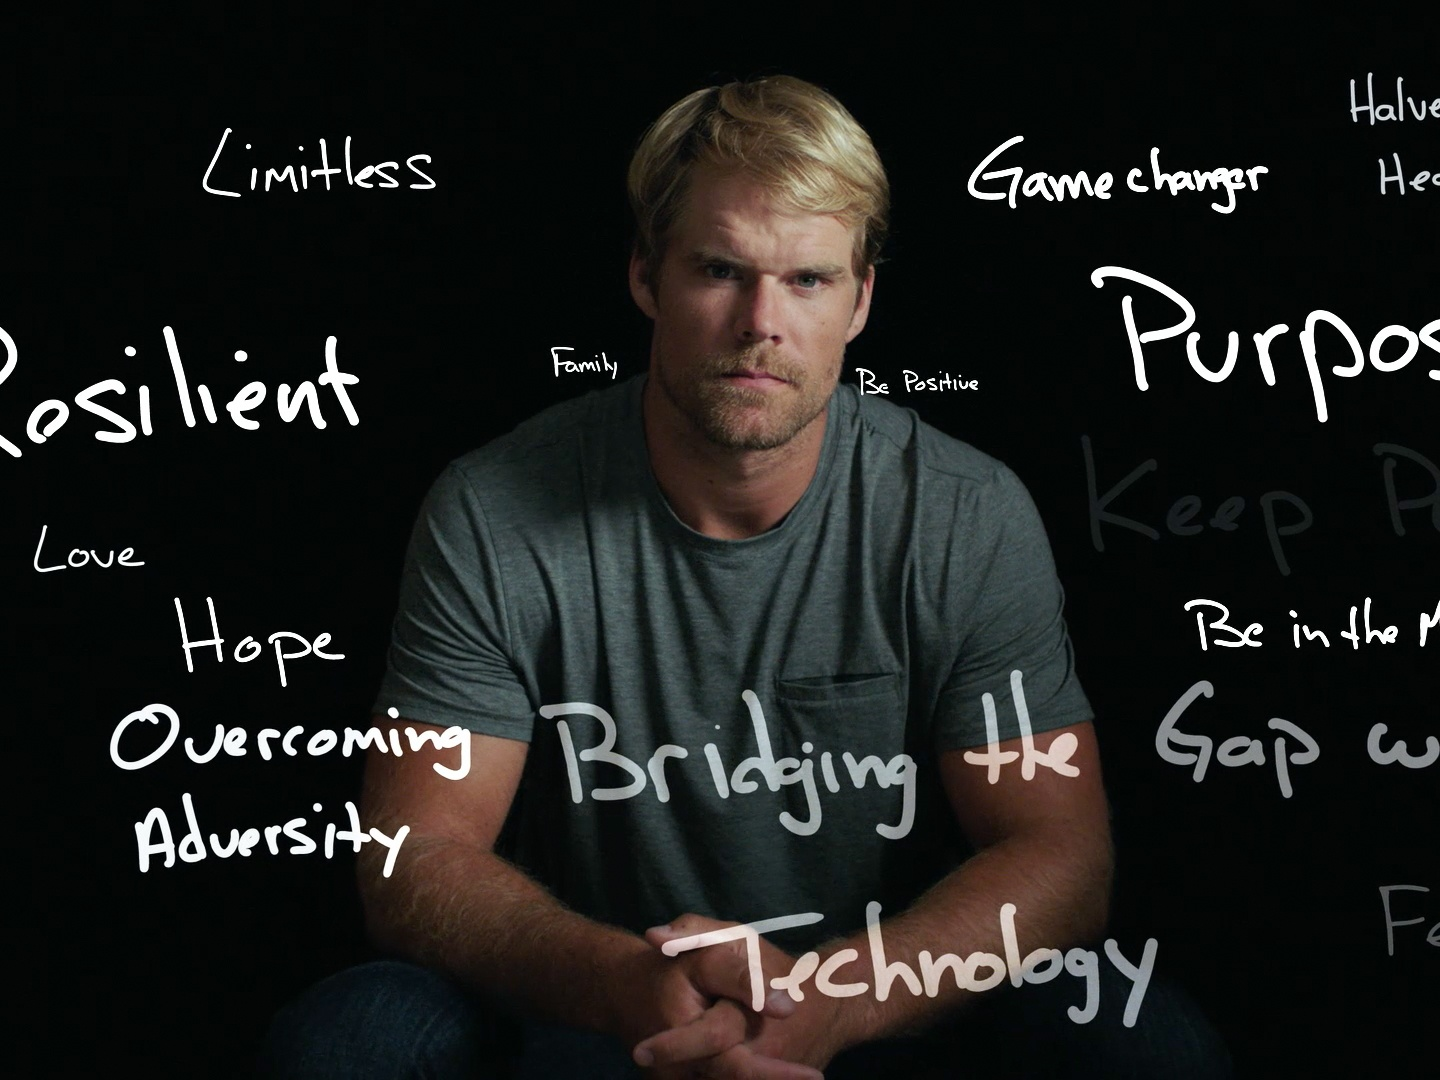 Image for Microsoft Create Change - Greg Olsen